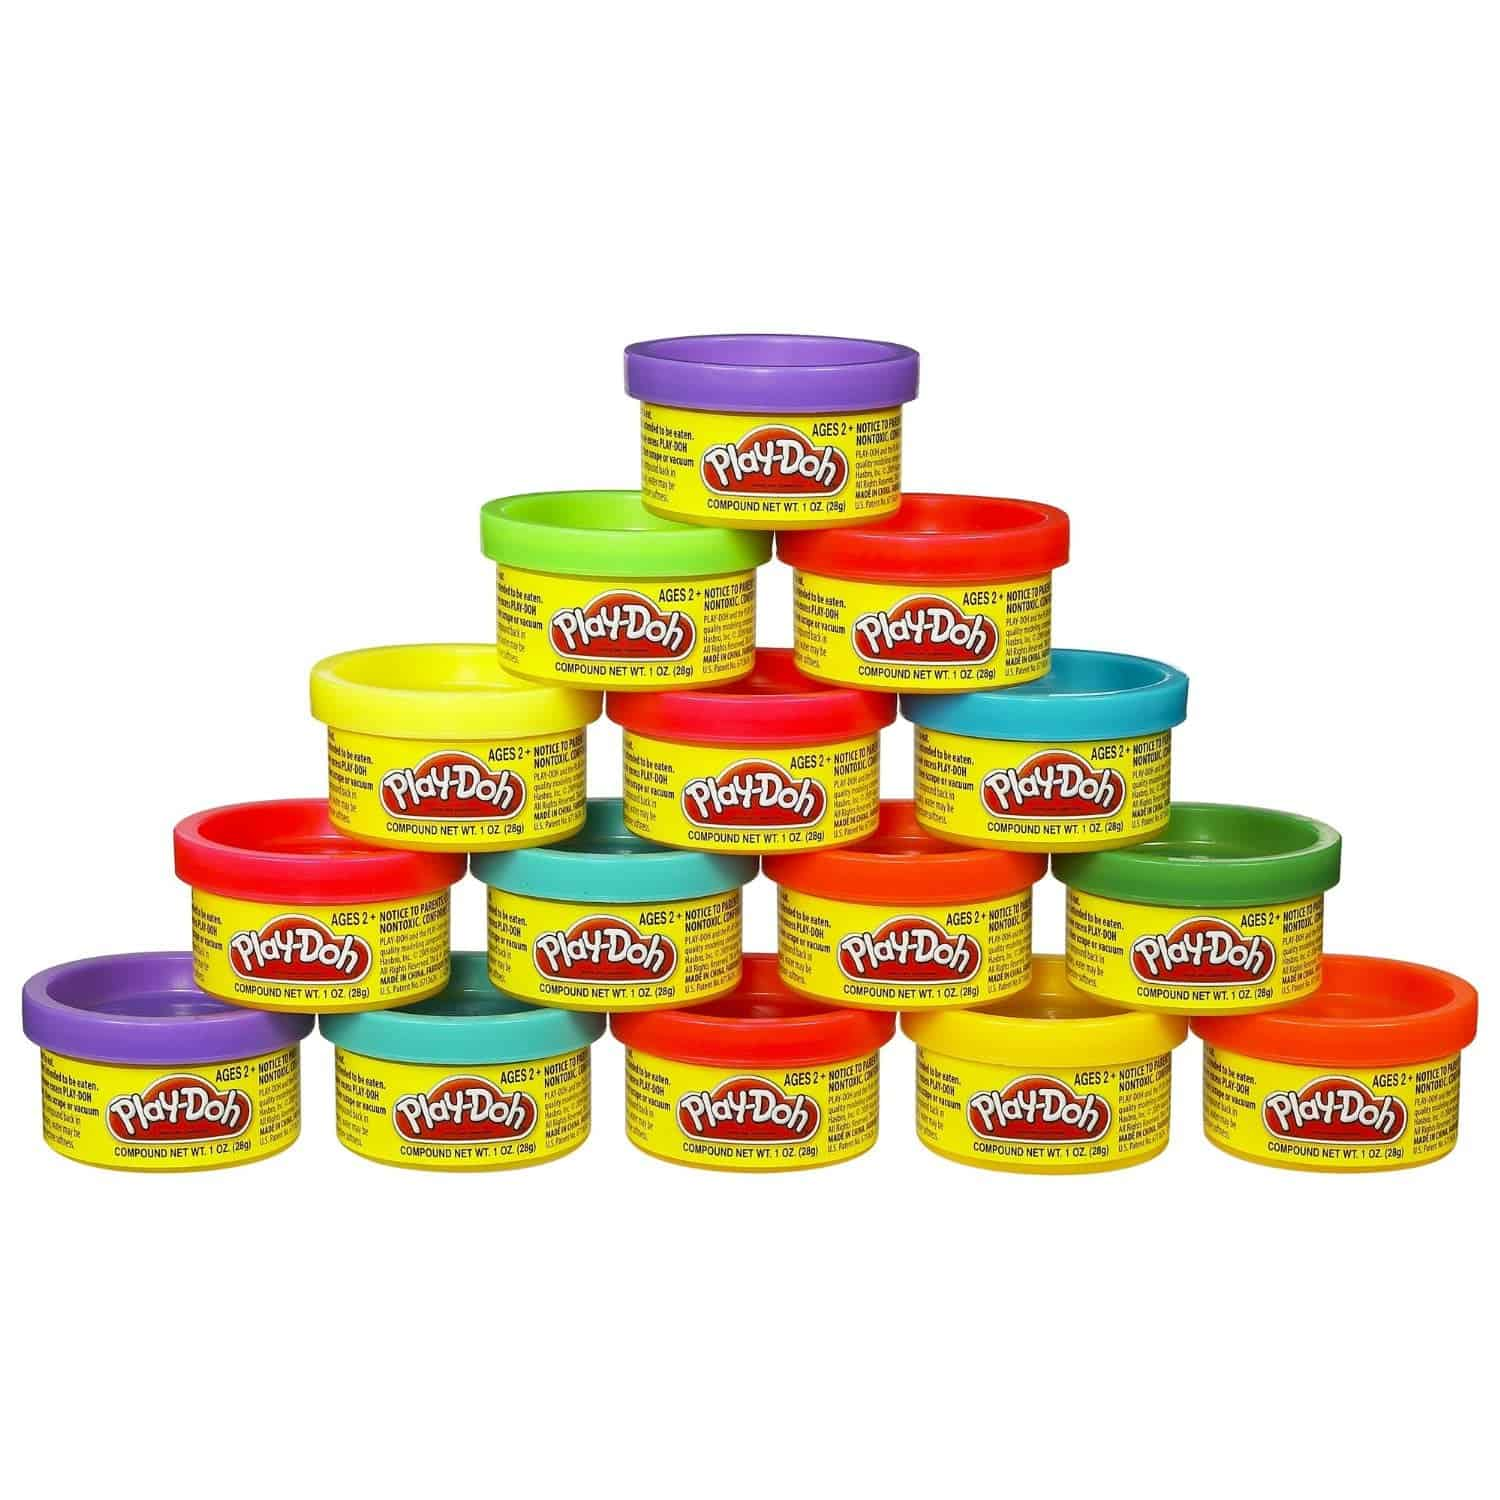 10+ Great Halloween Treats to Give out that Aren't Candy: Play Doh | www.thepinningmama.com